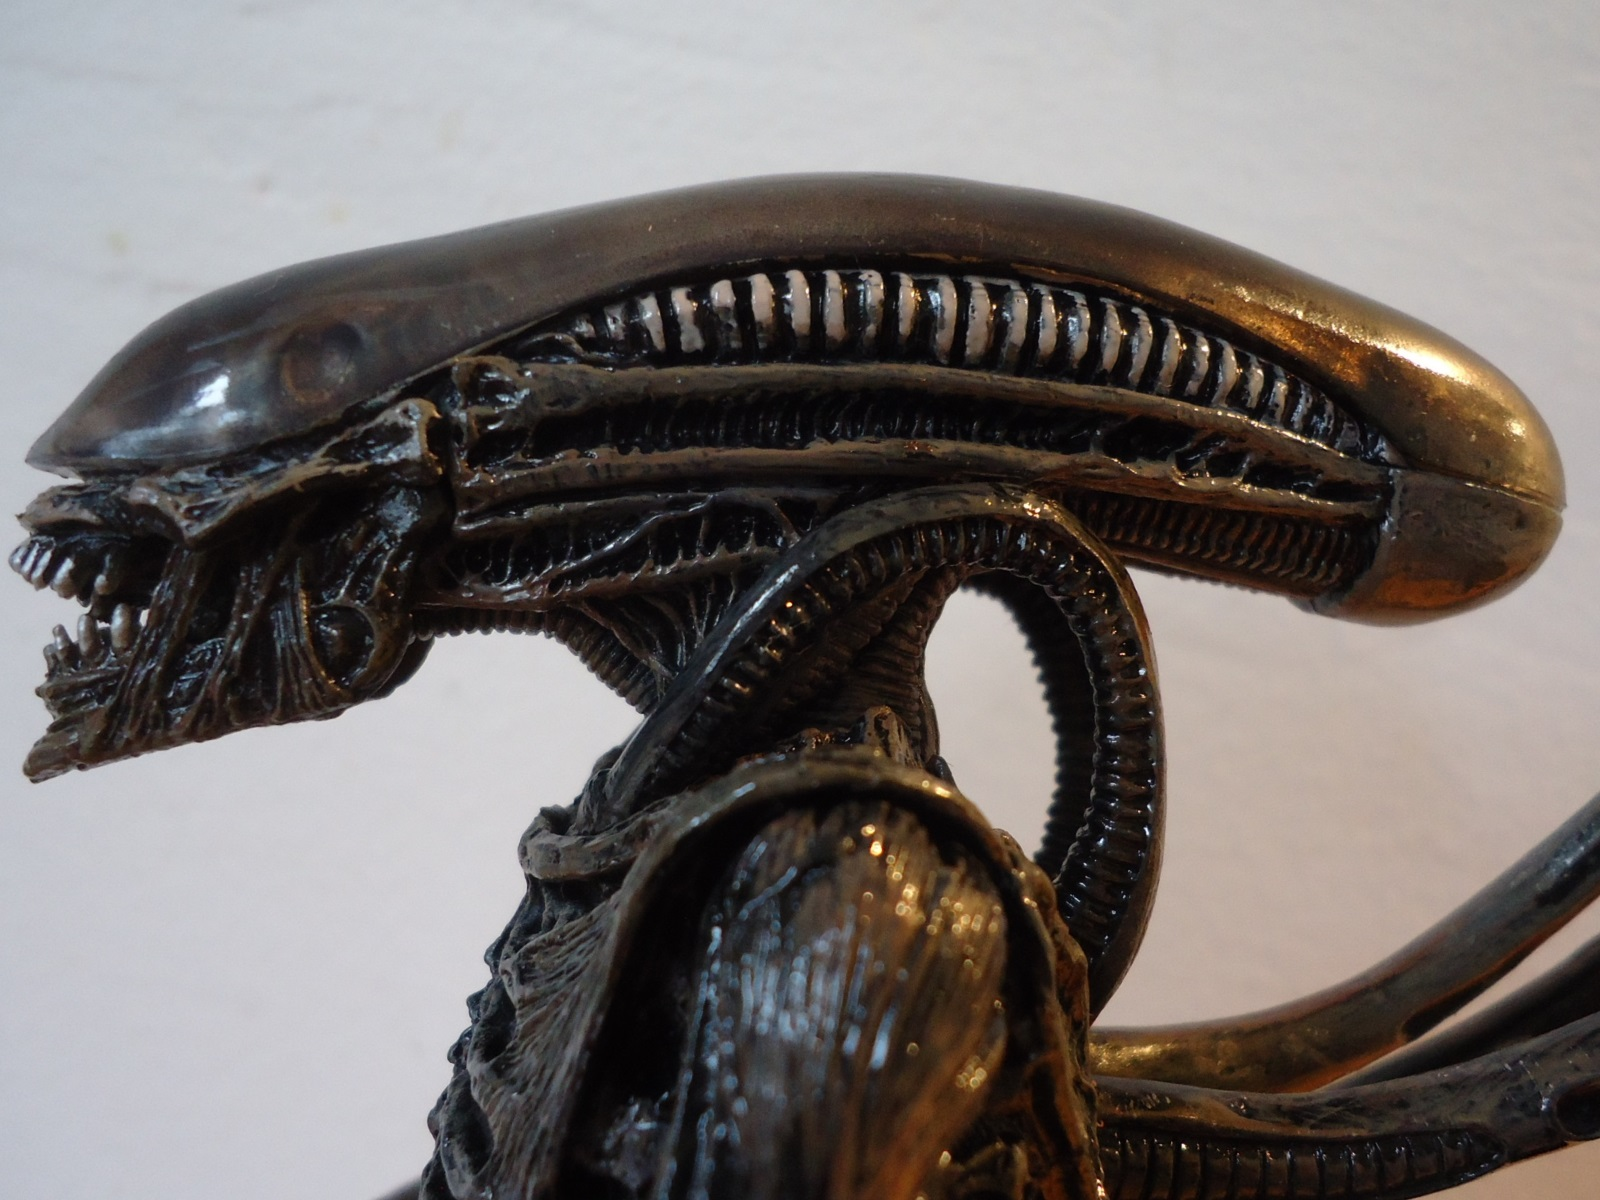 NECA Alien Covenant Xenomorph Review